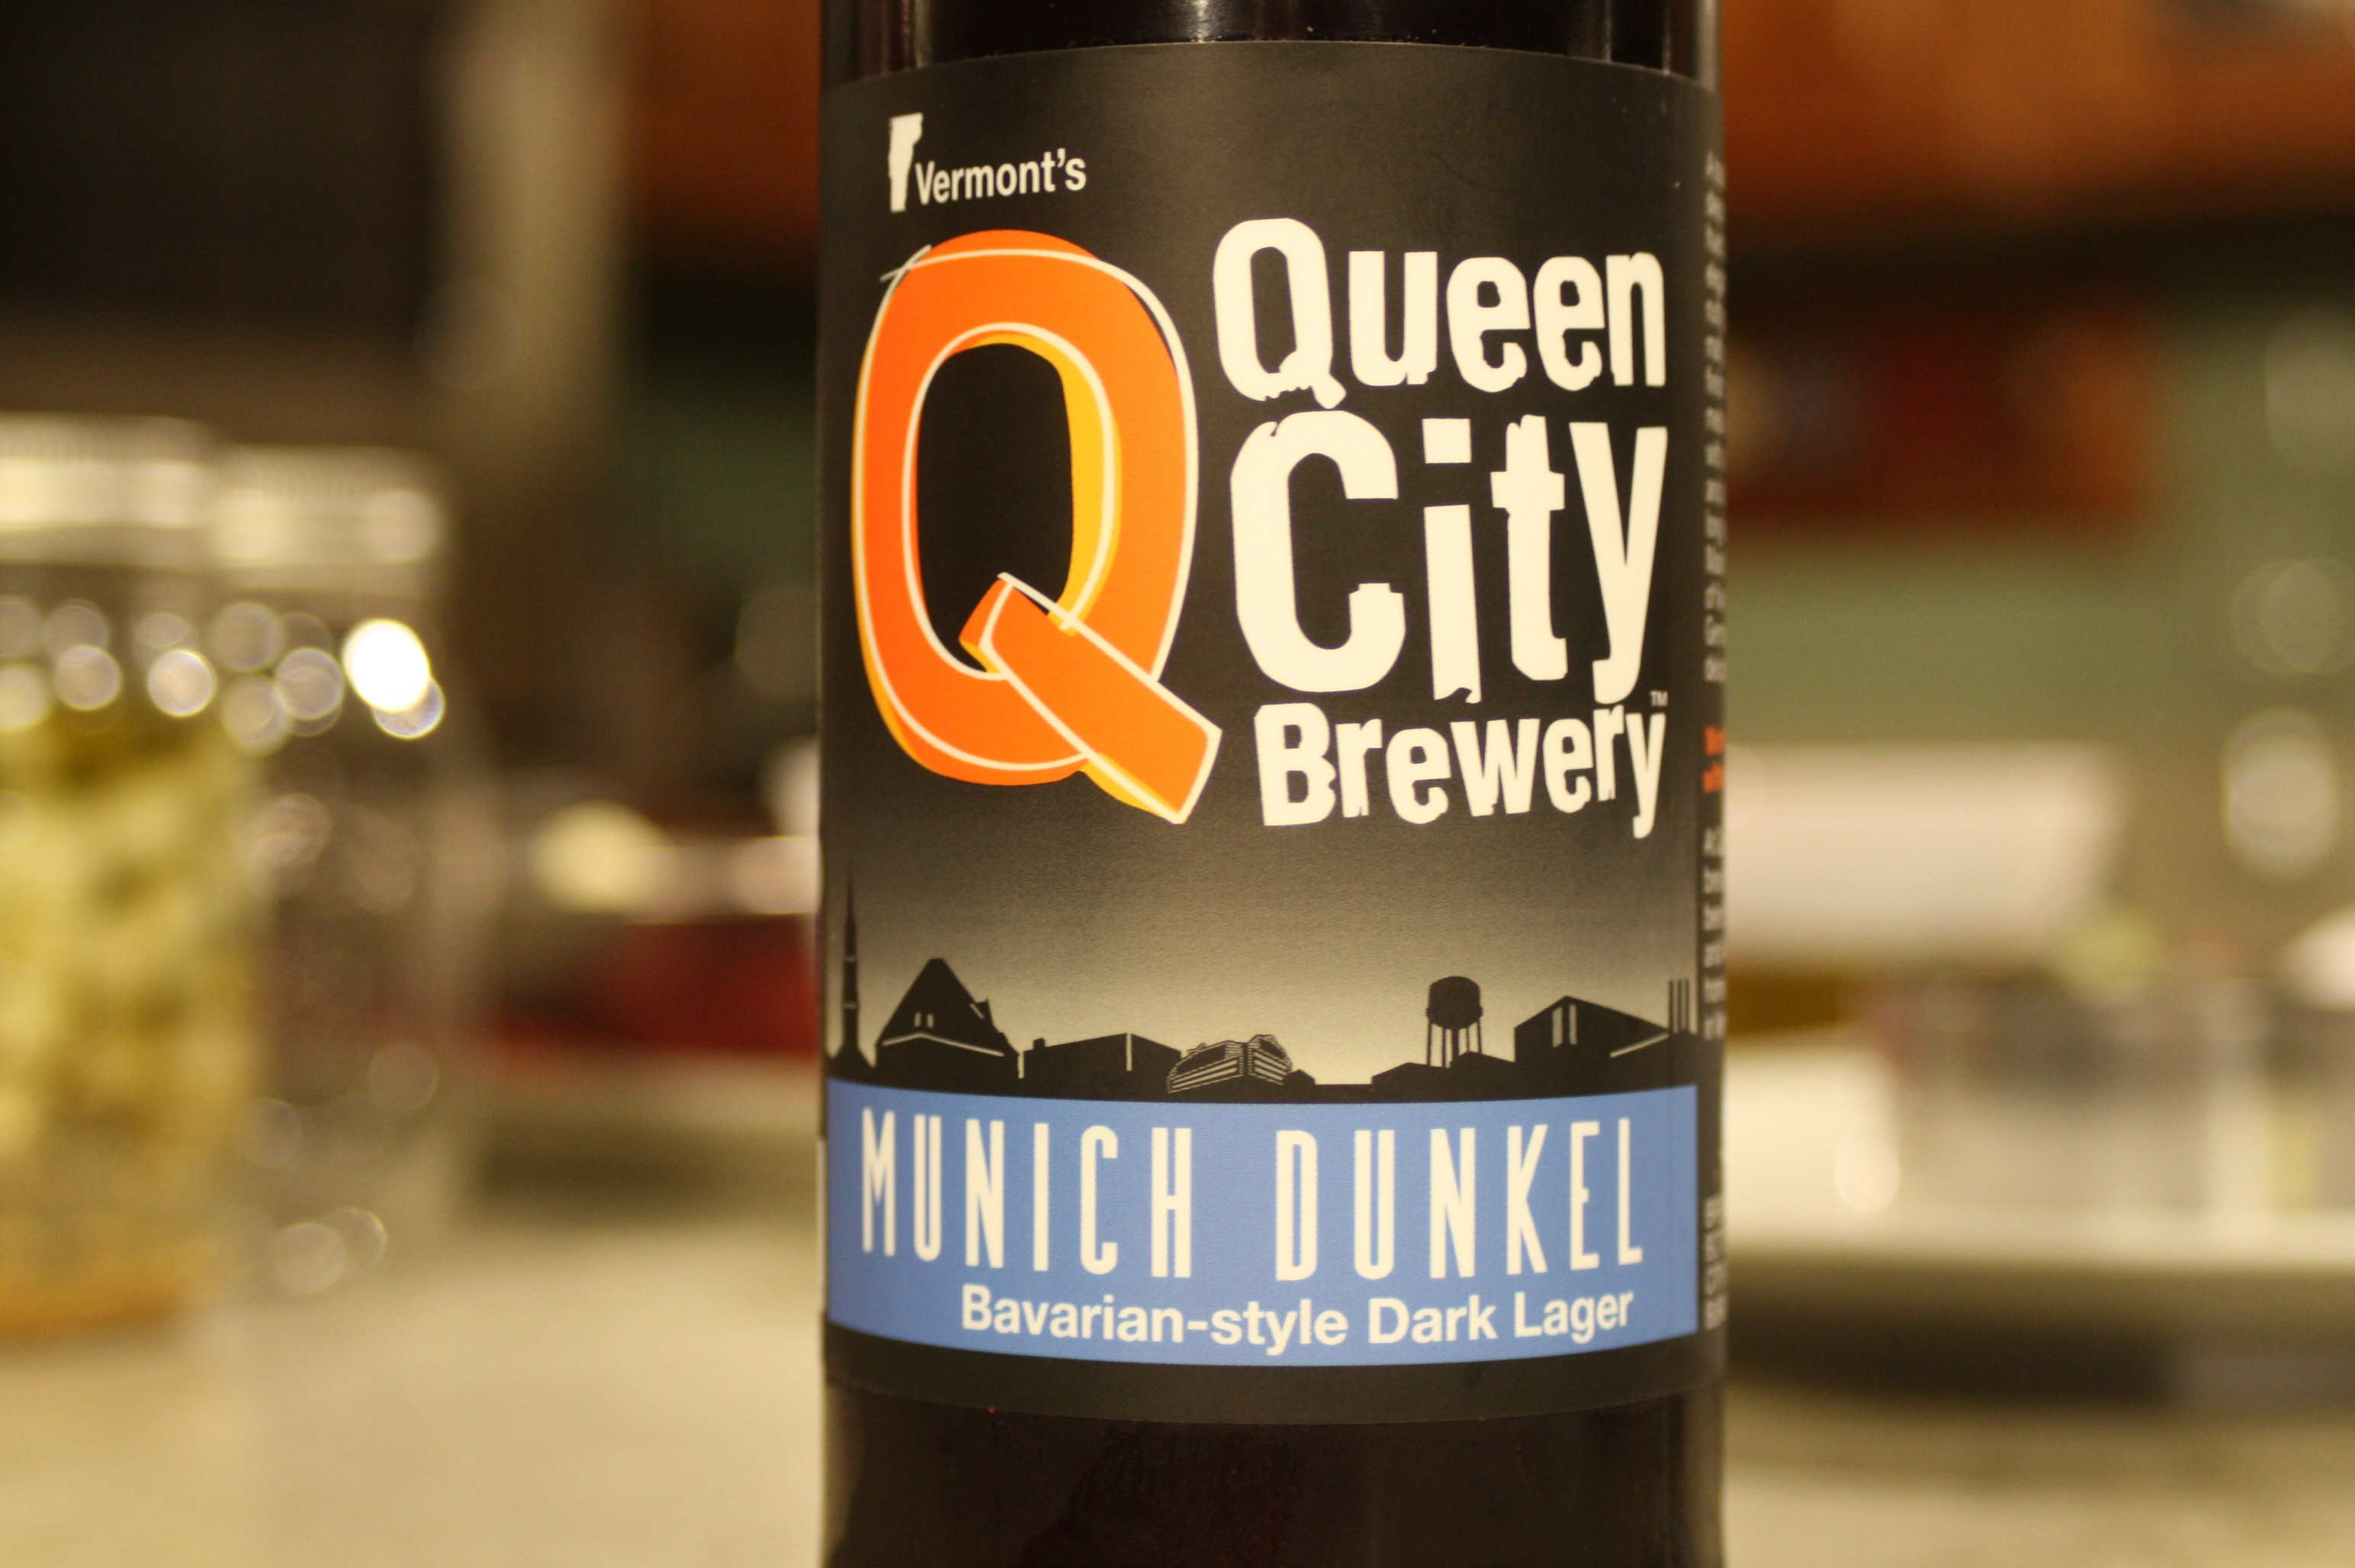 Queen City Brewery Munich Dunkel